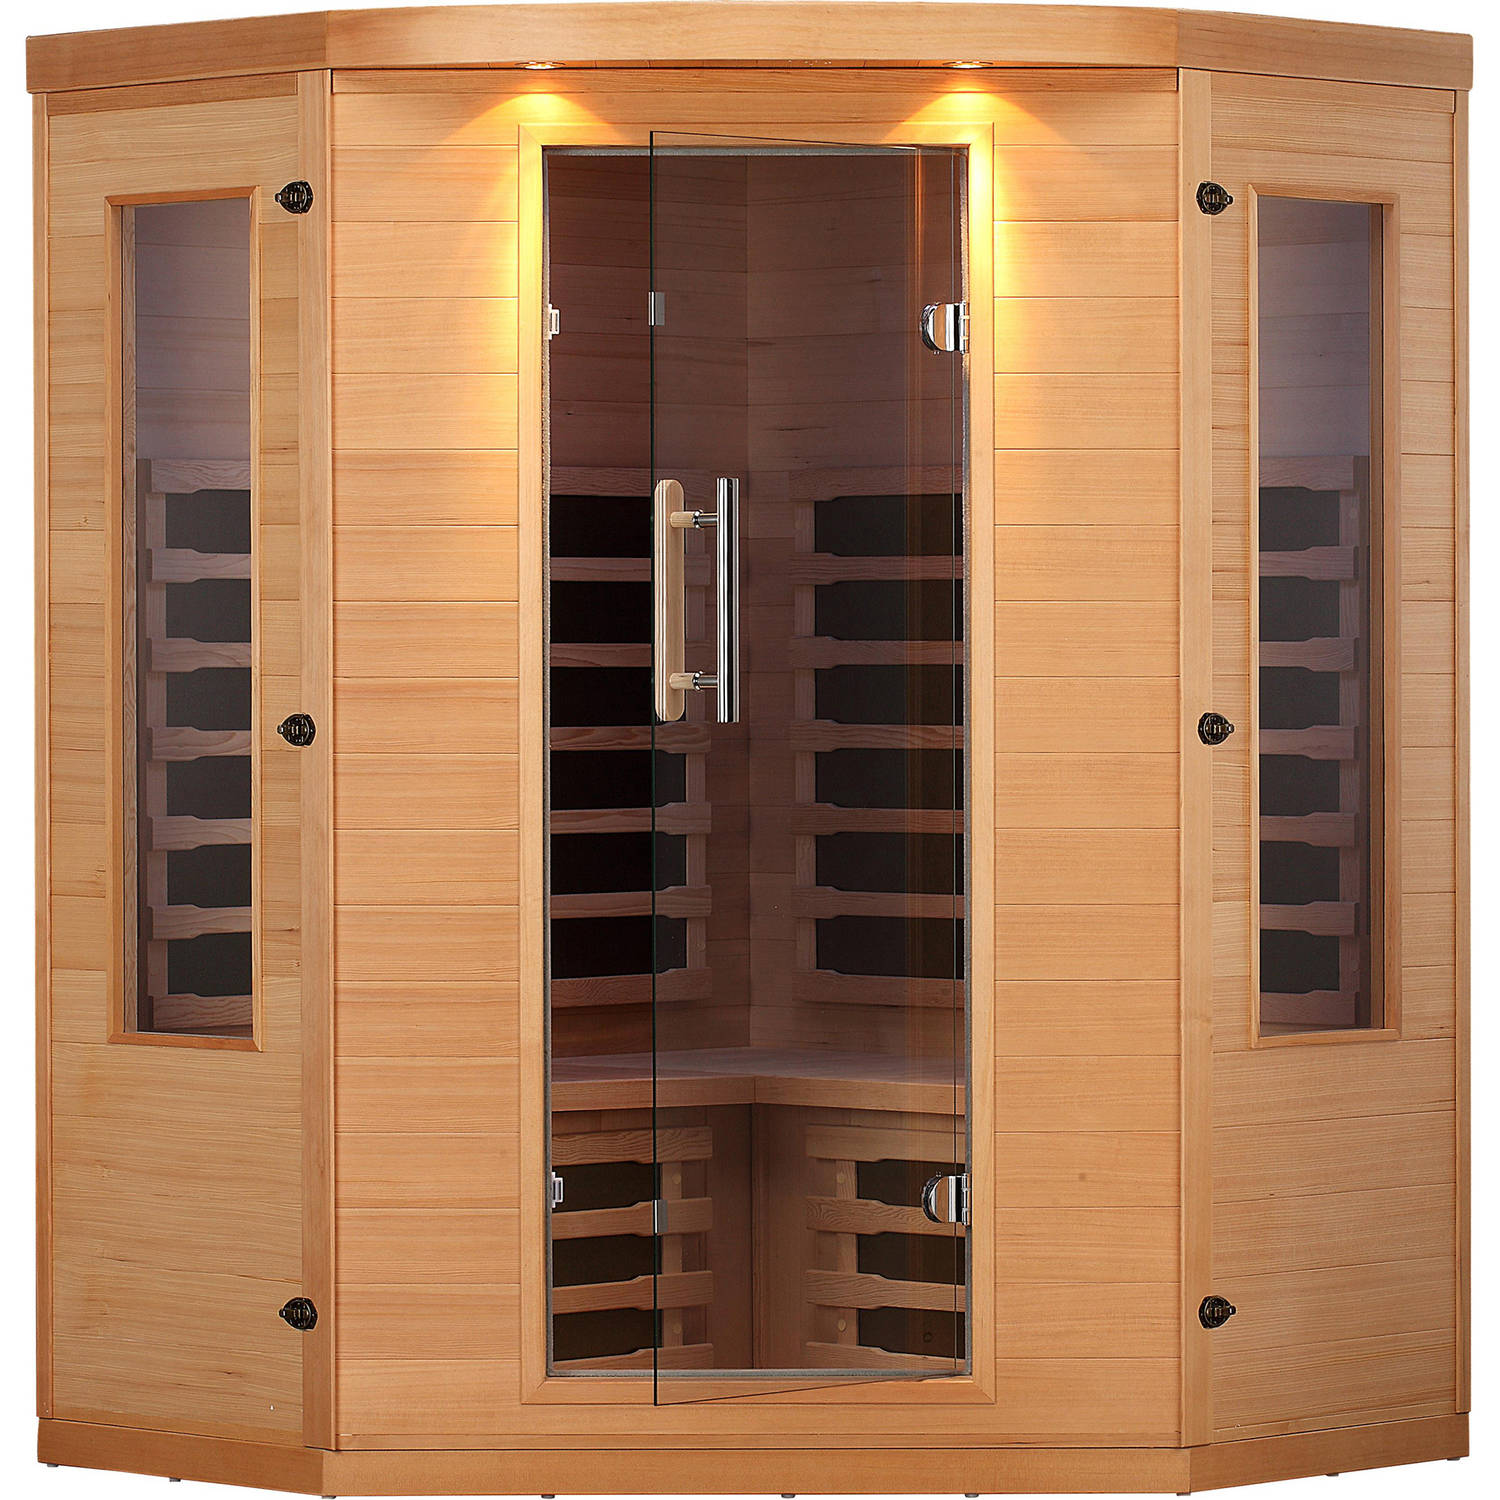 Canadian Spa Co. Aspen 4-Person Far Infrared Corner Sauna by Canadian Spa Company